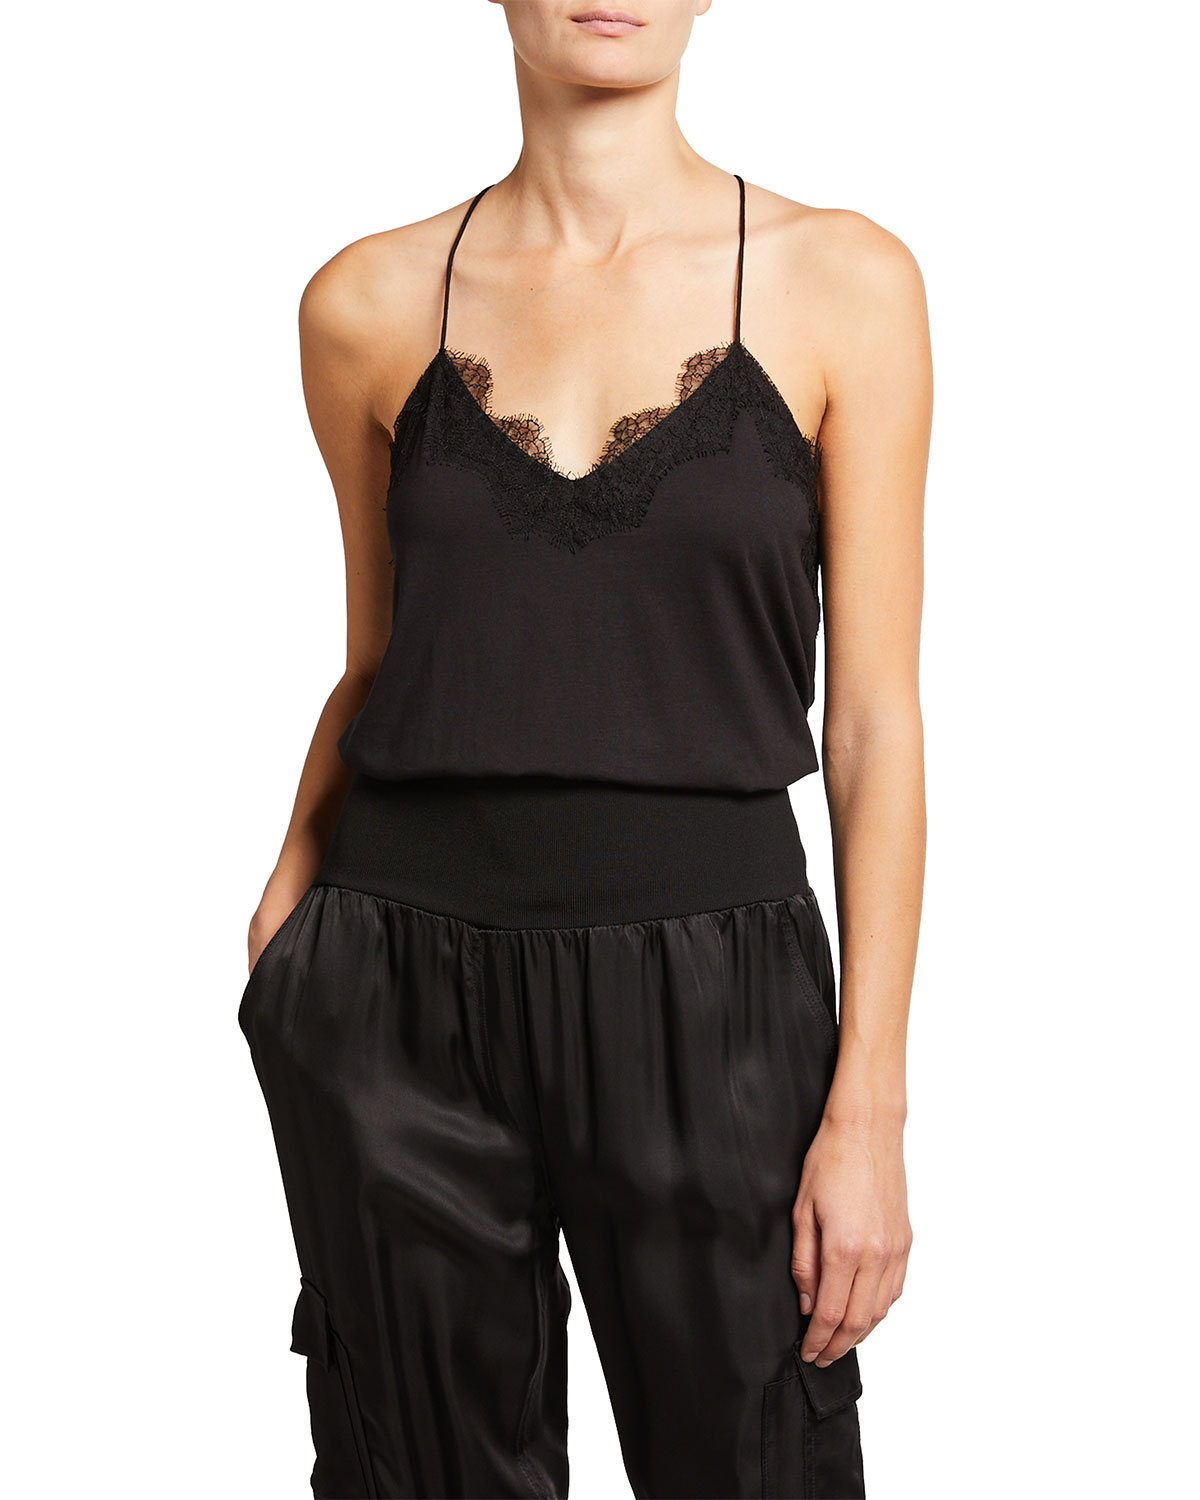 Cami Nyc RACER MODAL CAMISOLE W/ LACE